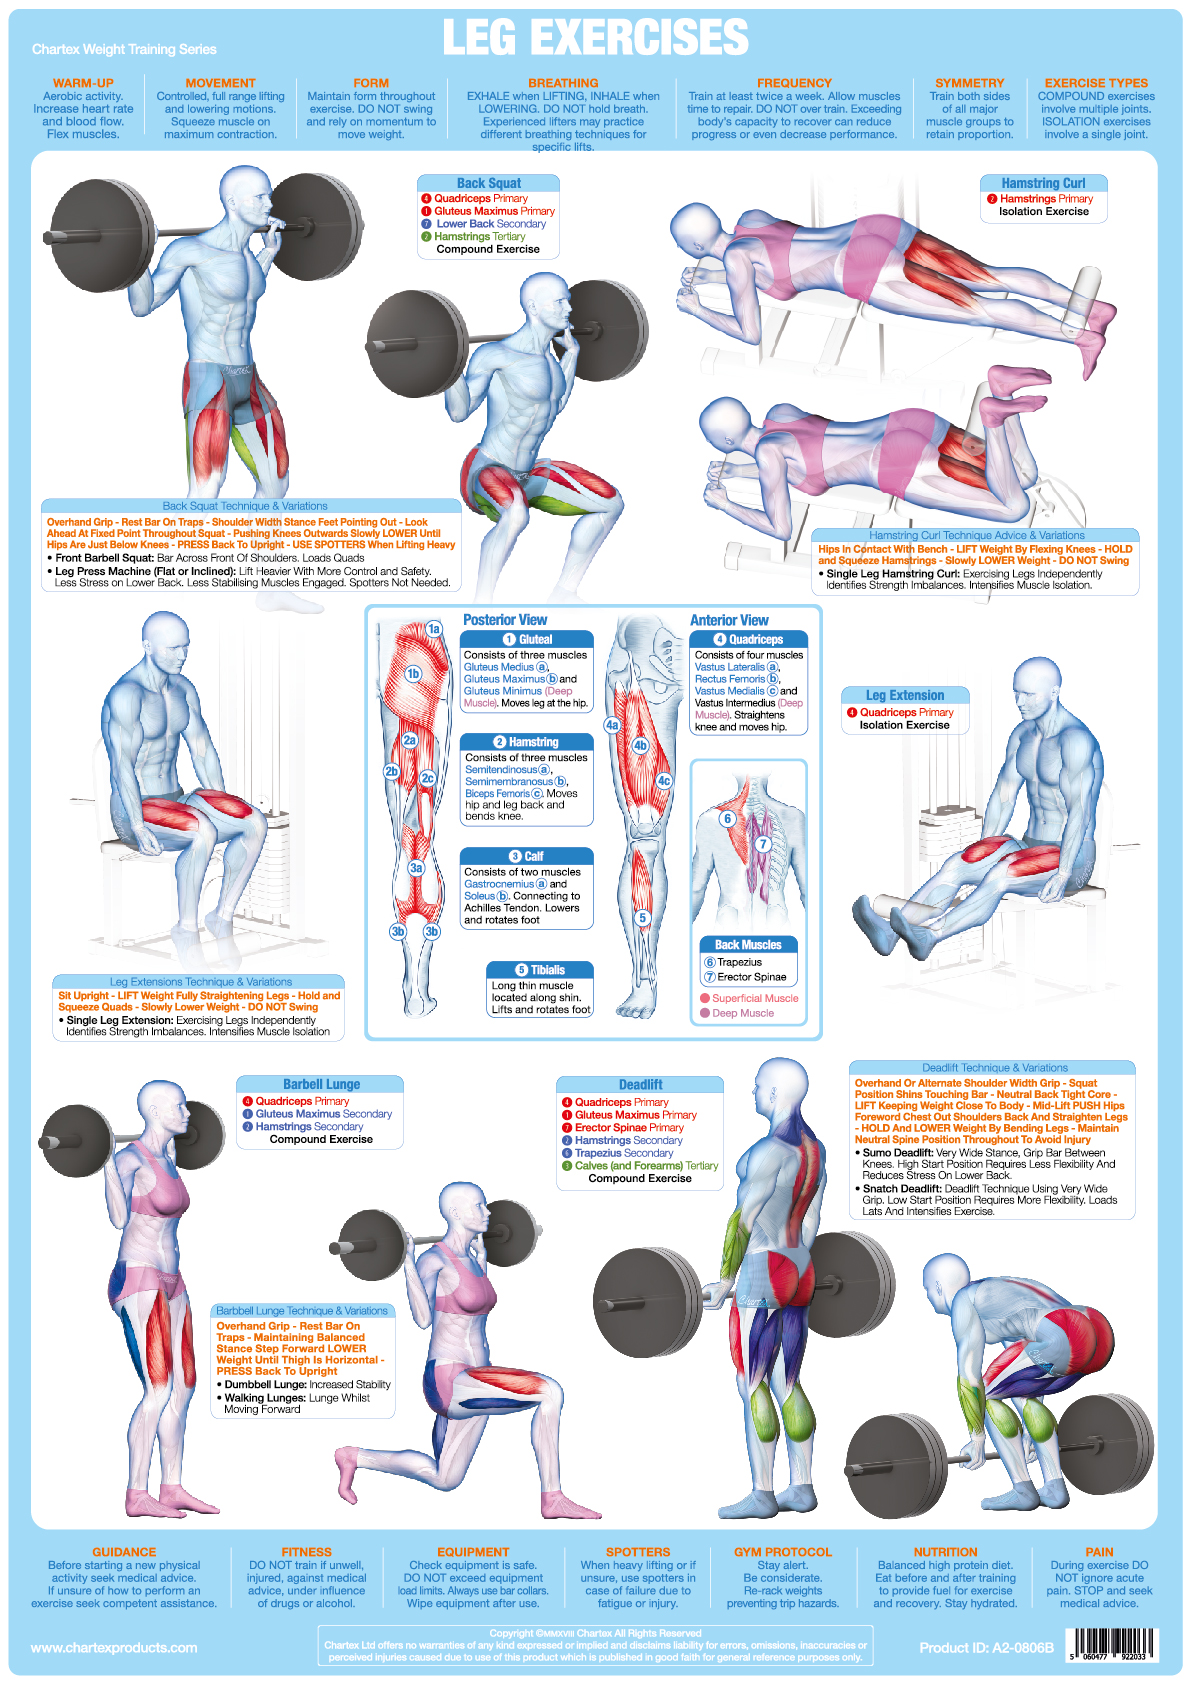 Jan Roscoe Publications Categories Posters Wall Charts Leg Muscles Inhalation And Exhalation Diagram Inhalingdiagram Weight Training A1 Chart